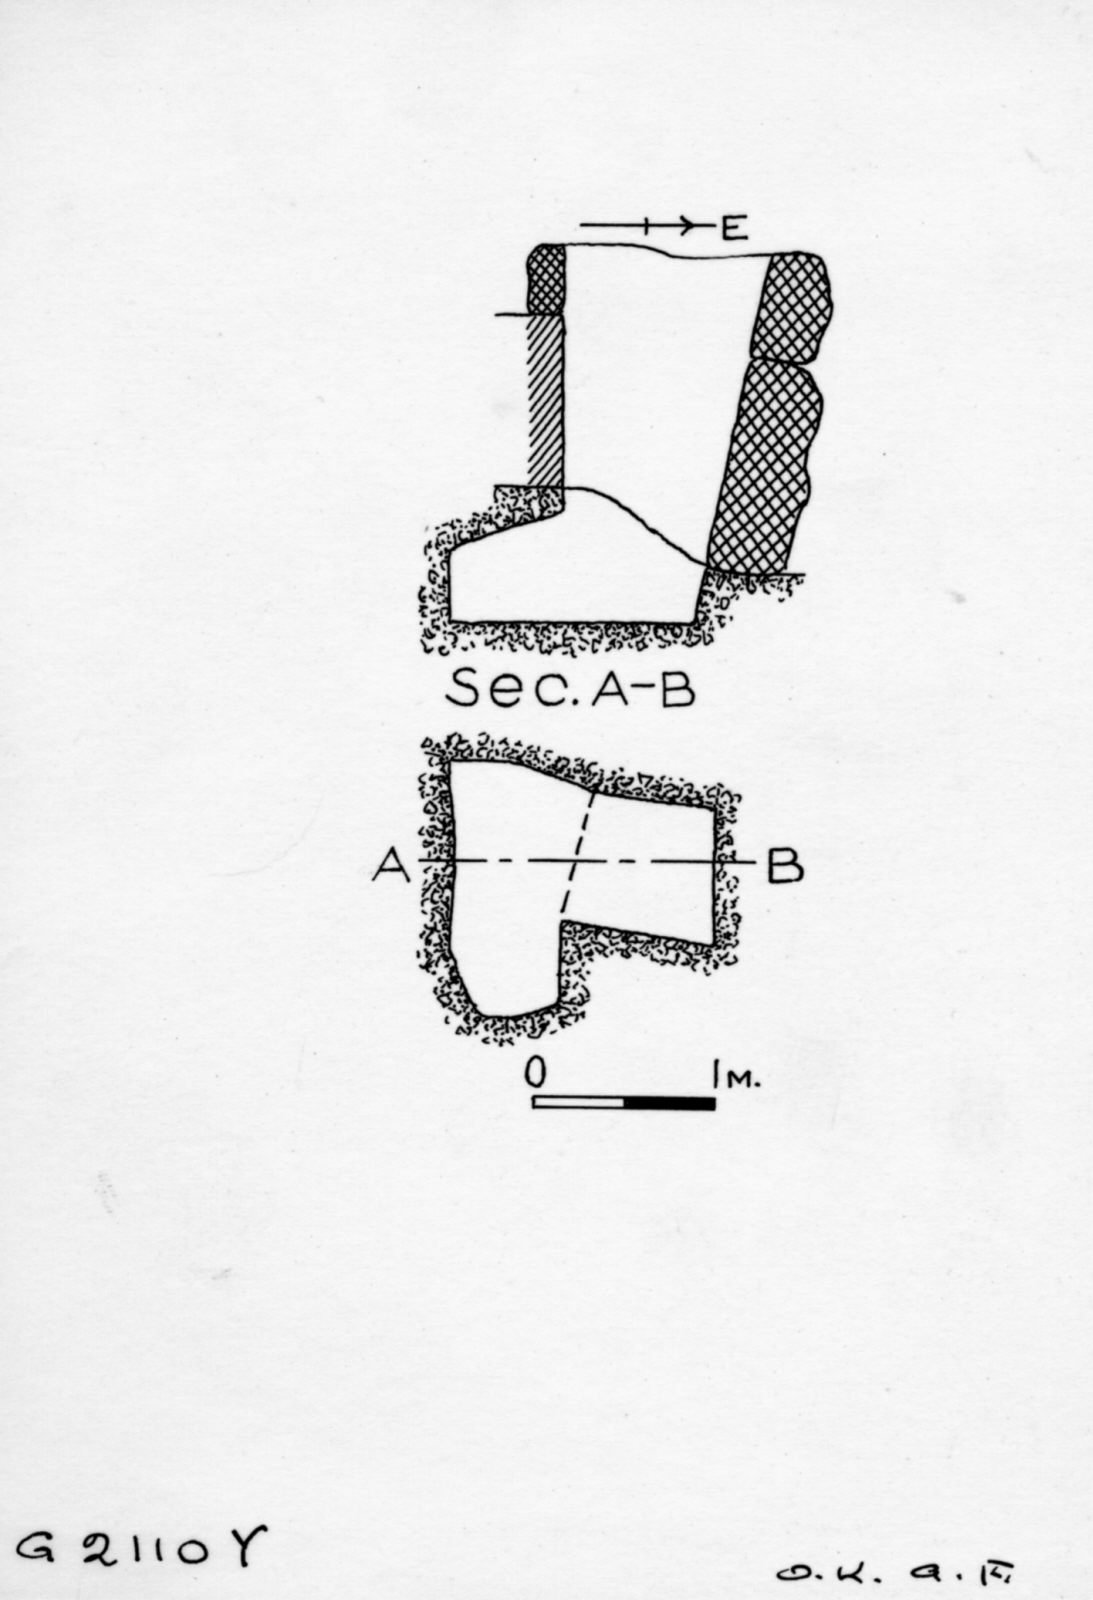 Maps and plans: G 2110, Shaft Y